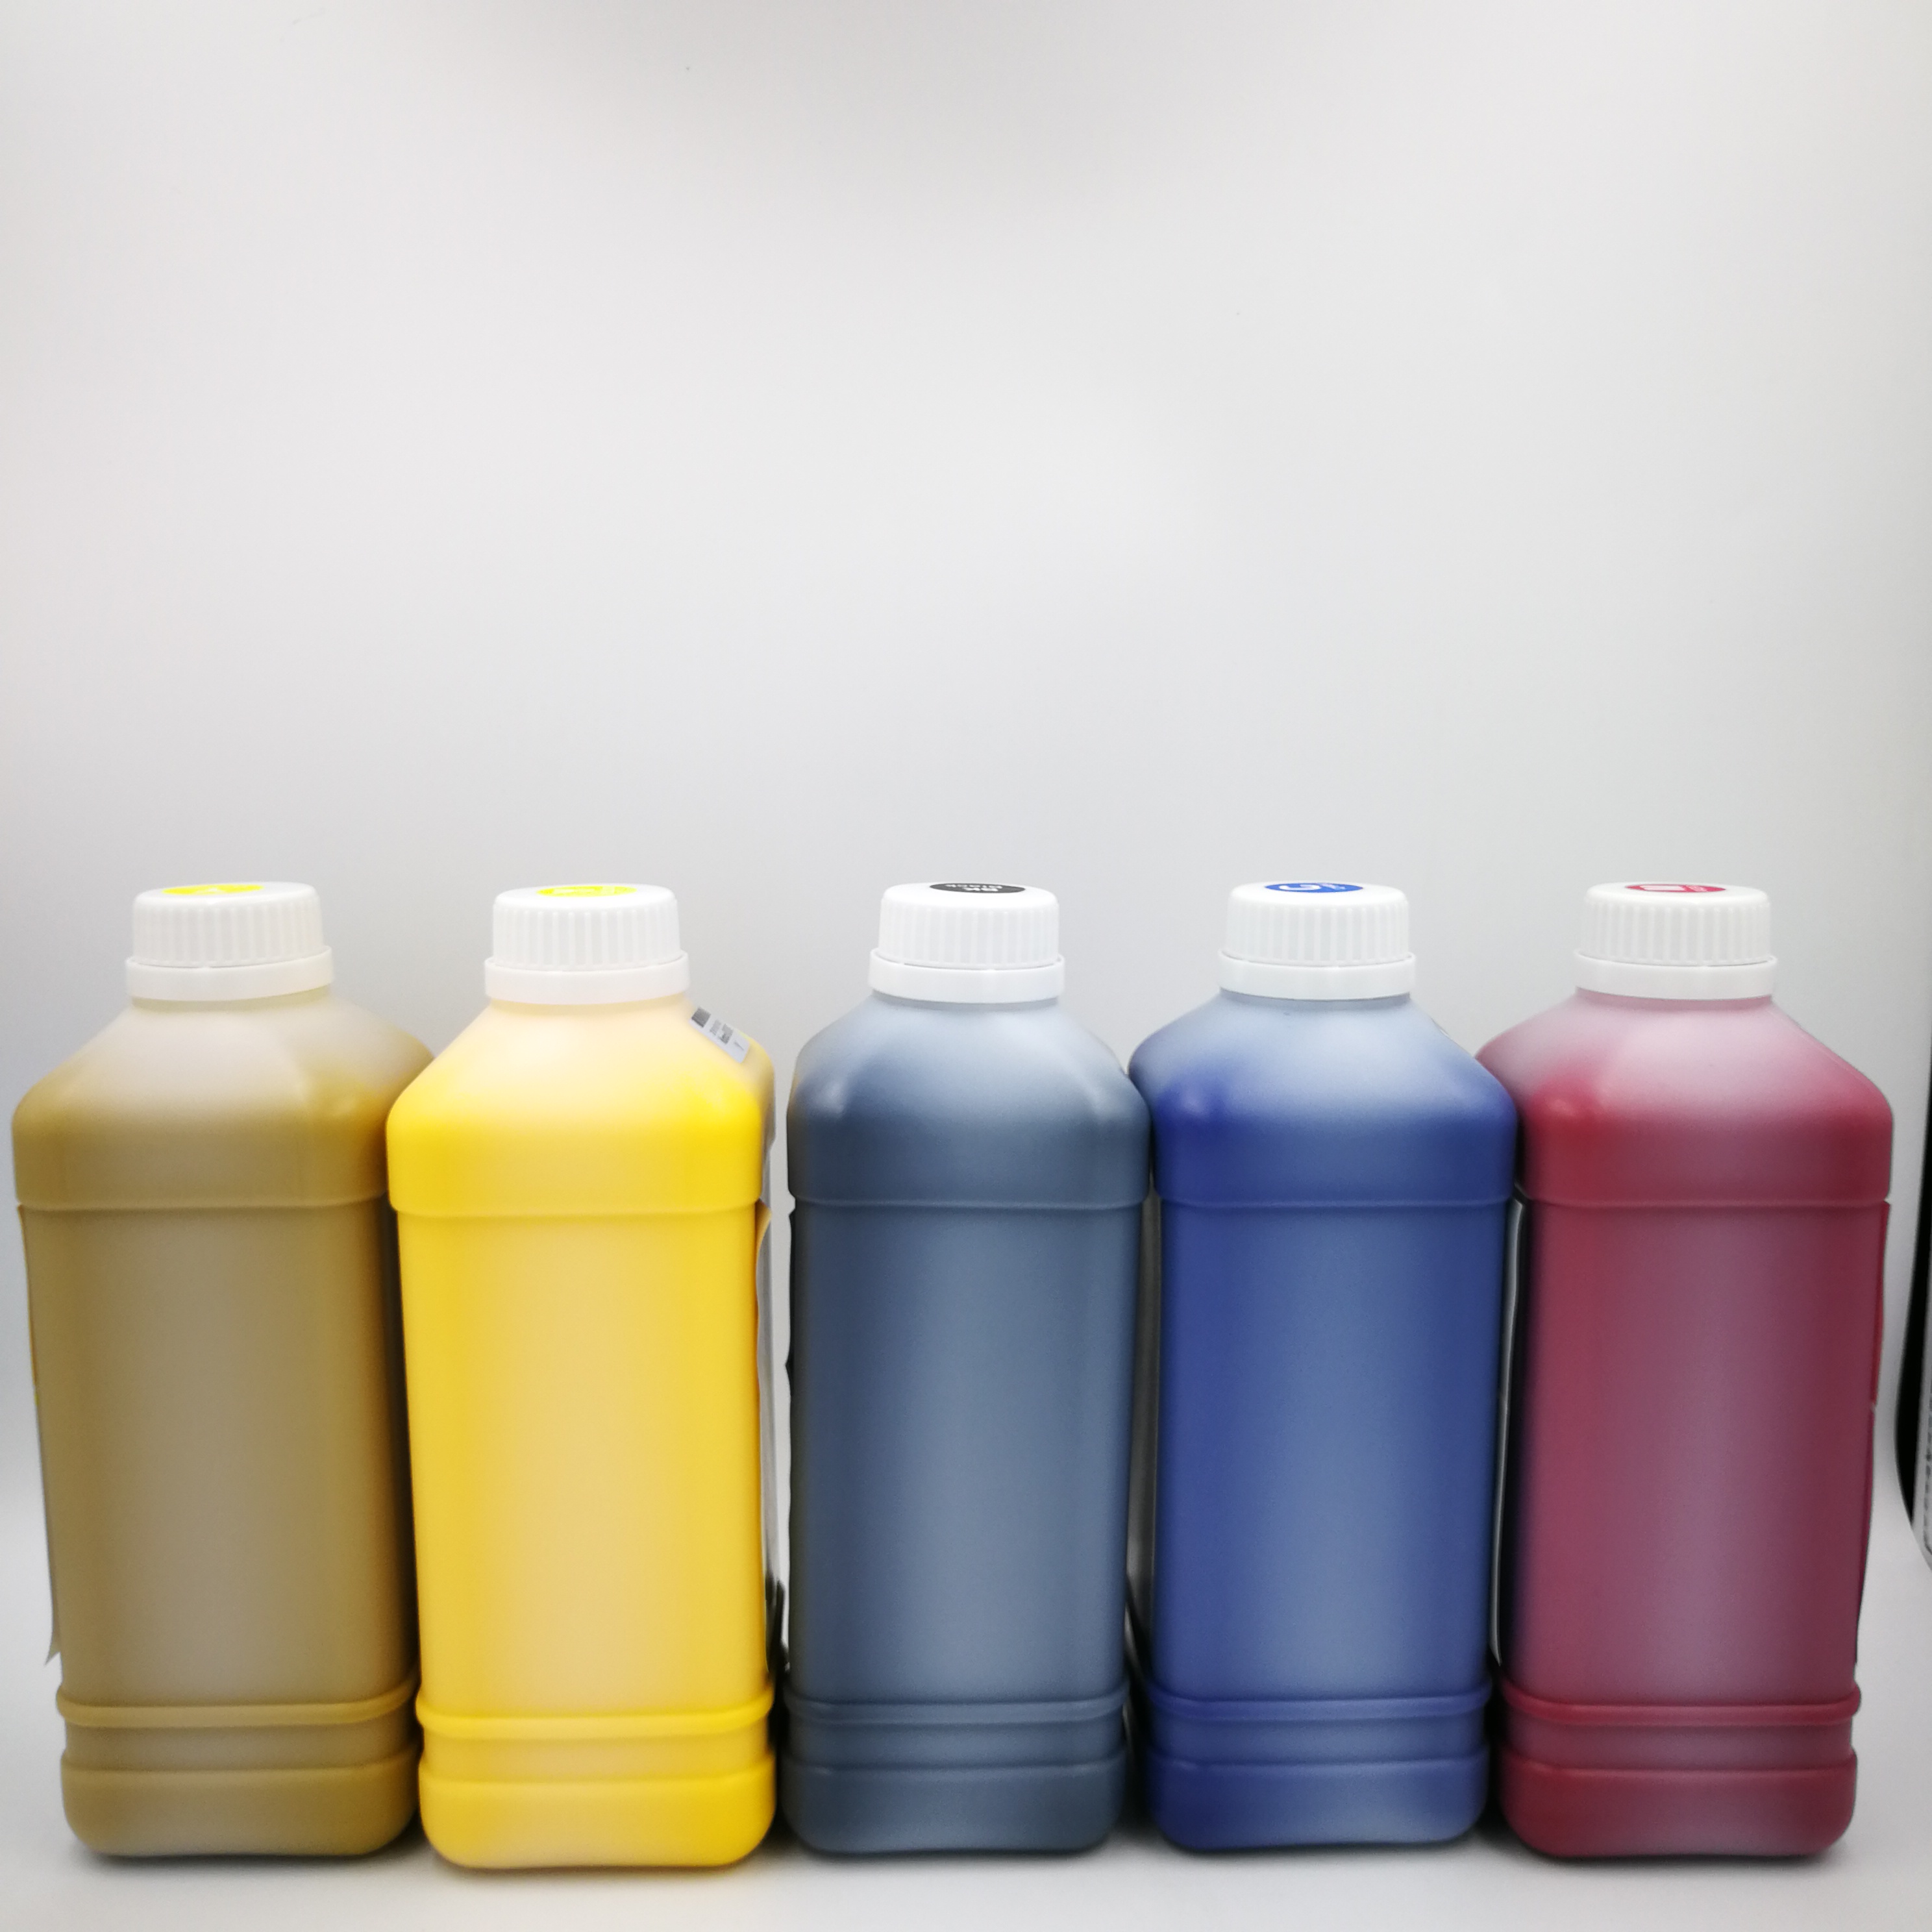 High quality Allwin Konica 512 42pl solvent ink